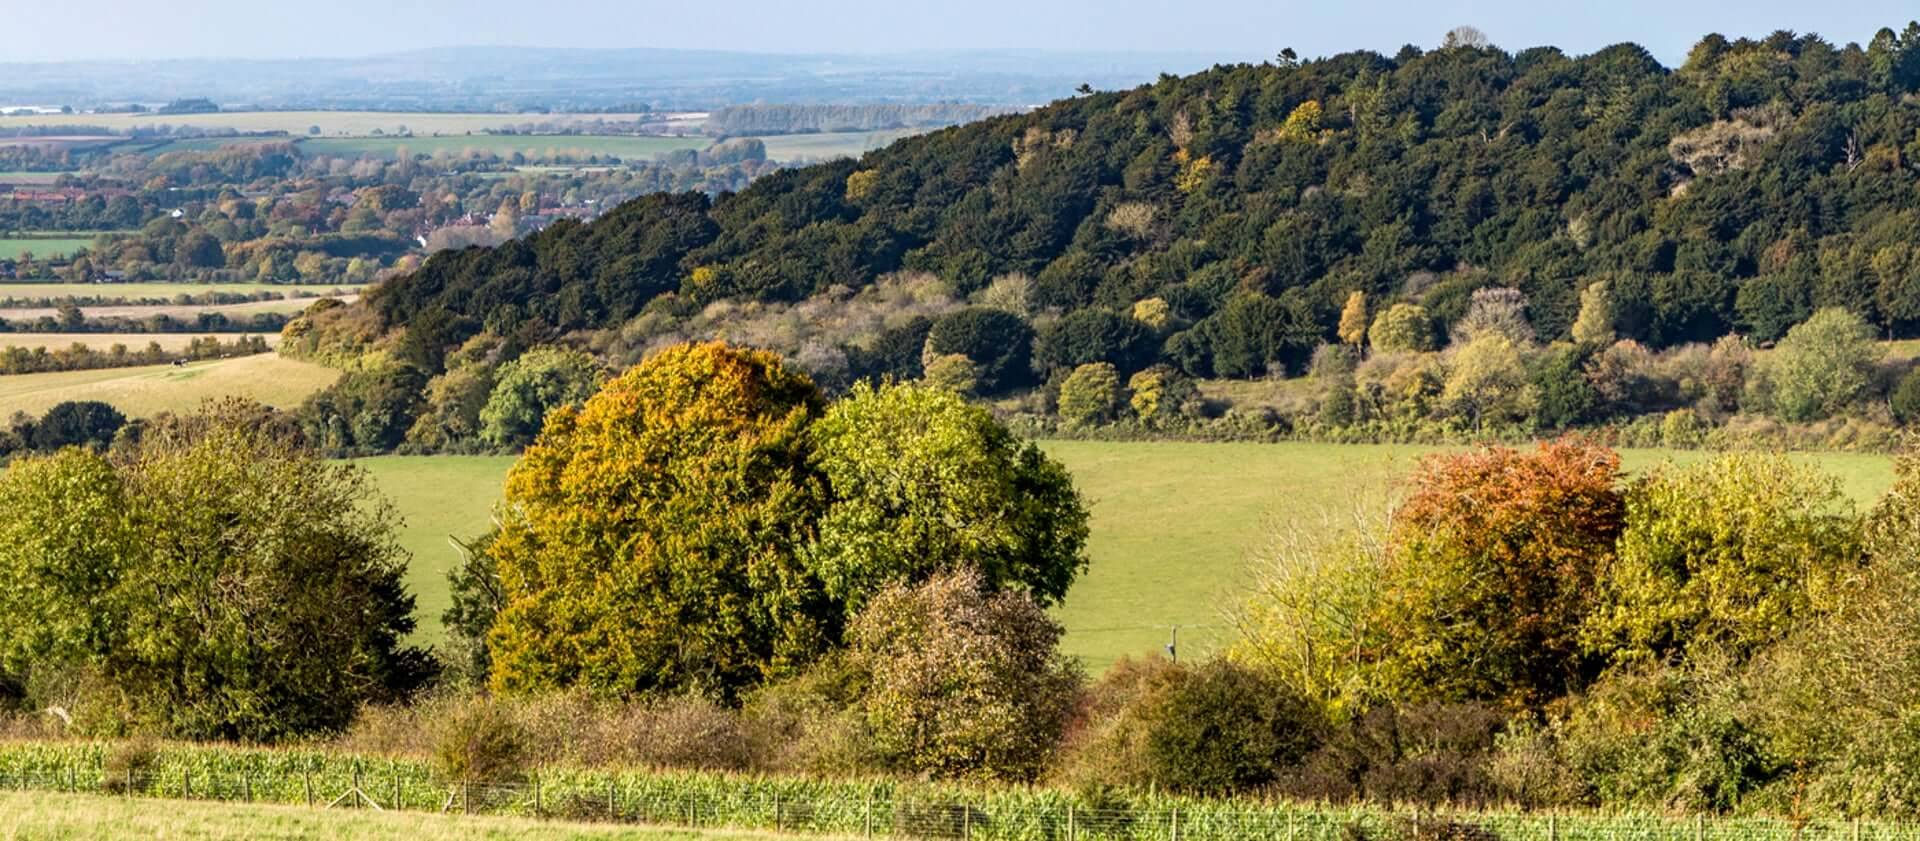 The view of Watlington Hill from Deans Wood.